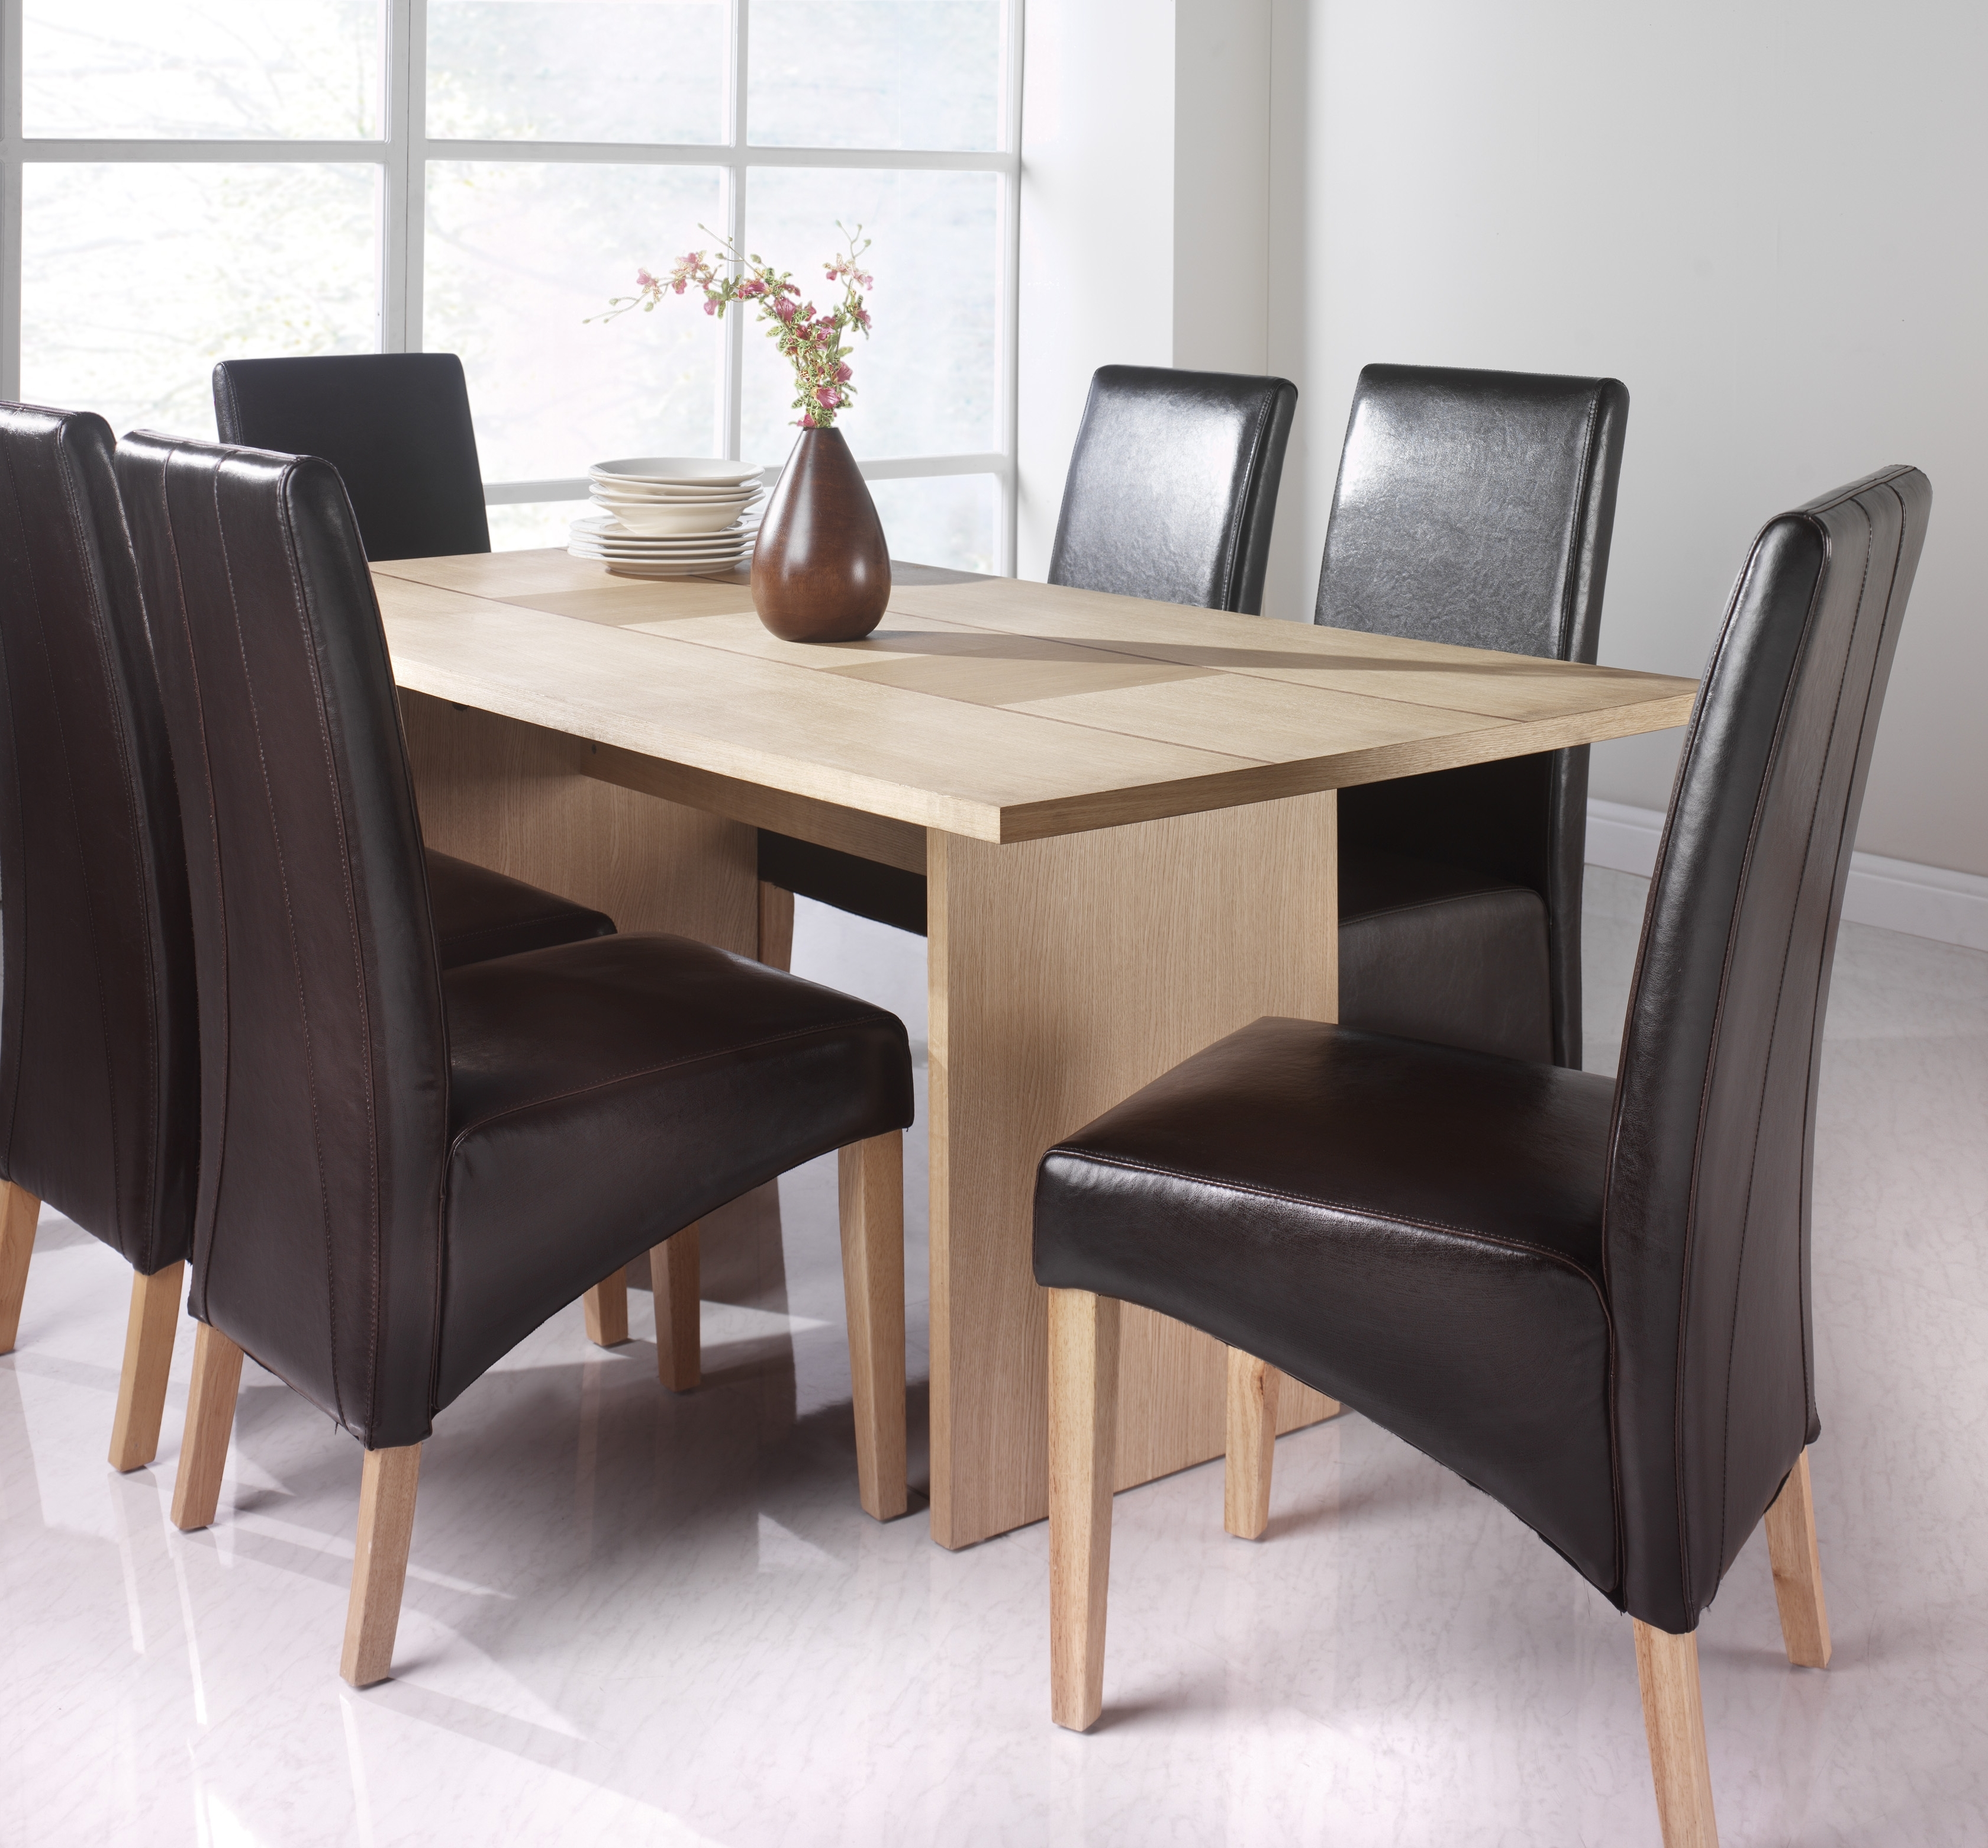 Dining Tables At Aintree Liquidation Centre with regard to Most Up-to-Date Oak Dining Suites